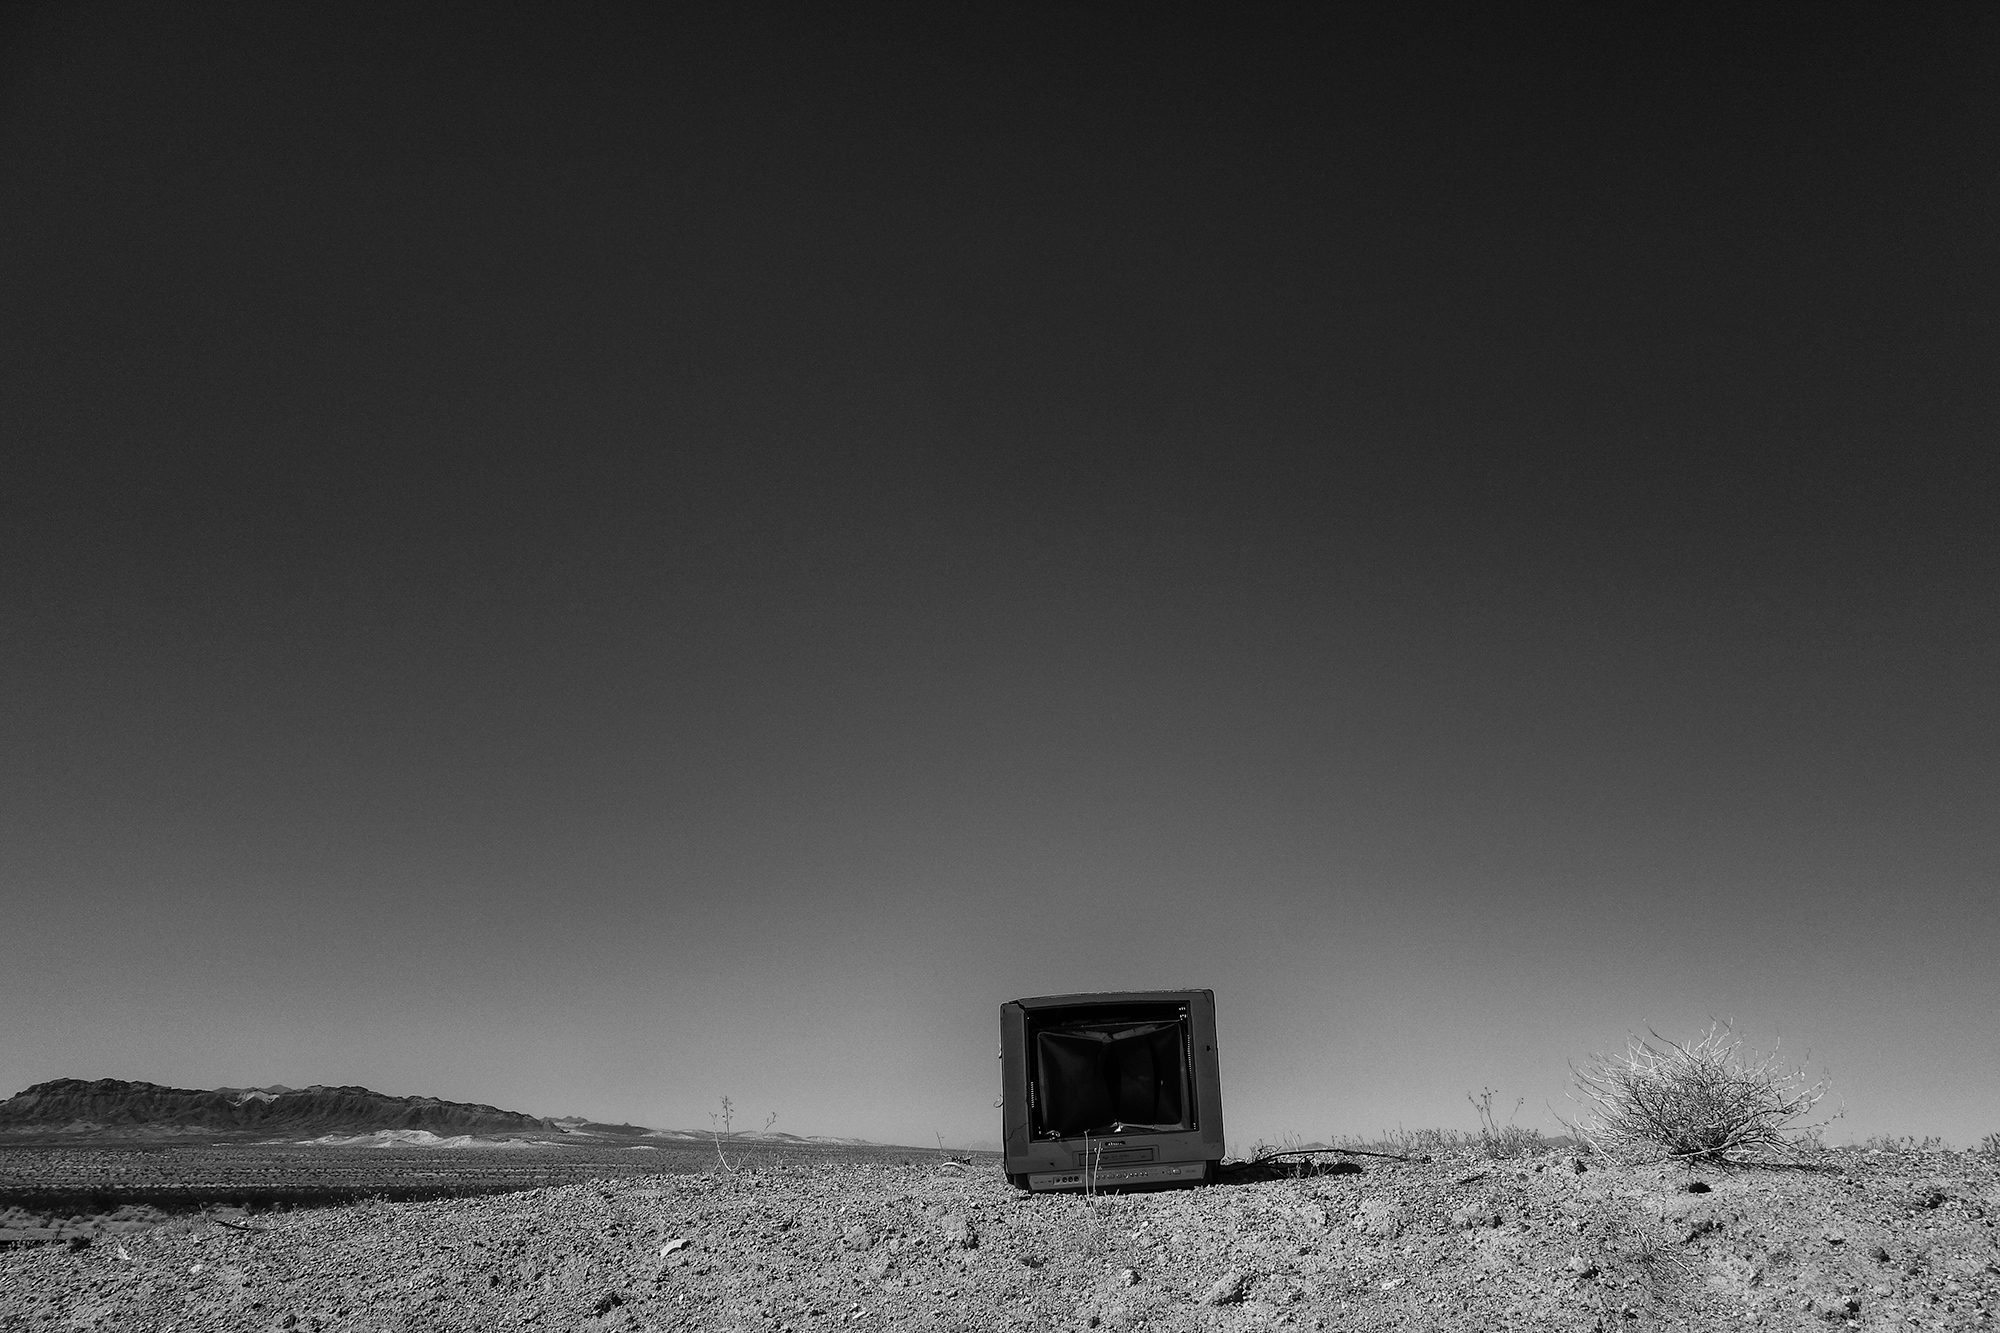 Television, #1. Mohave Desert, 2017